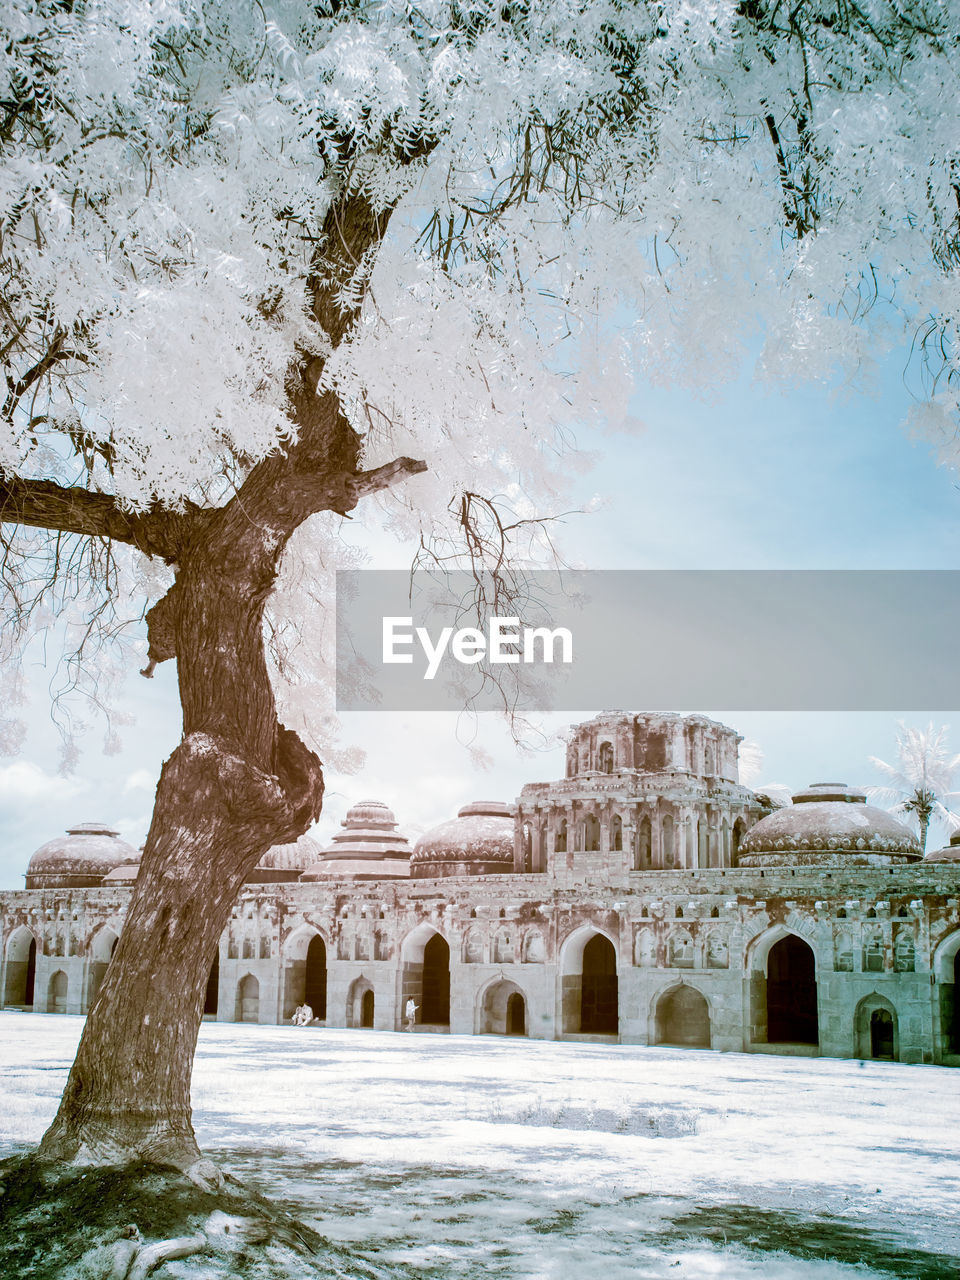 architecture, built structure, water, nature, sky, history, tree, the past, no people, day, travel destinations, arch, cold temperature, winter, plant, building exterior, ancient, outdoors, travel, architectural column, ancient civilization